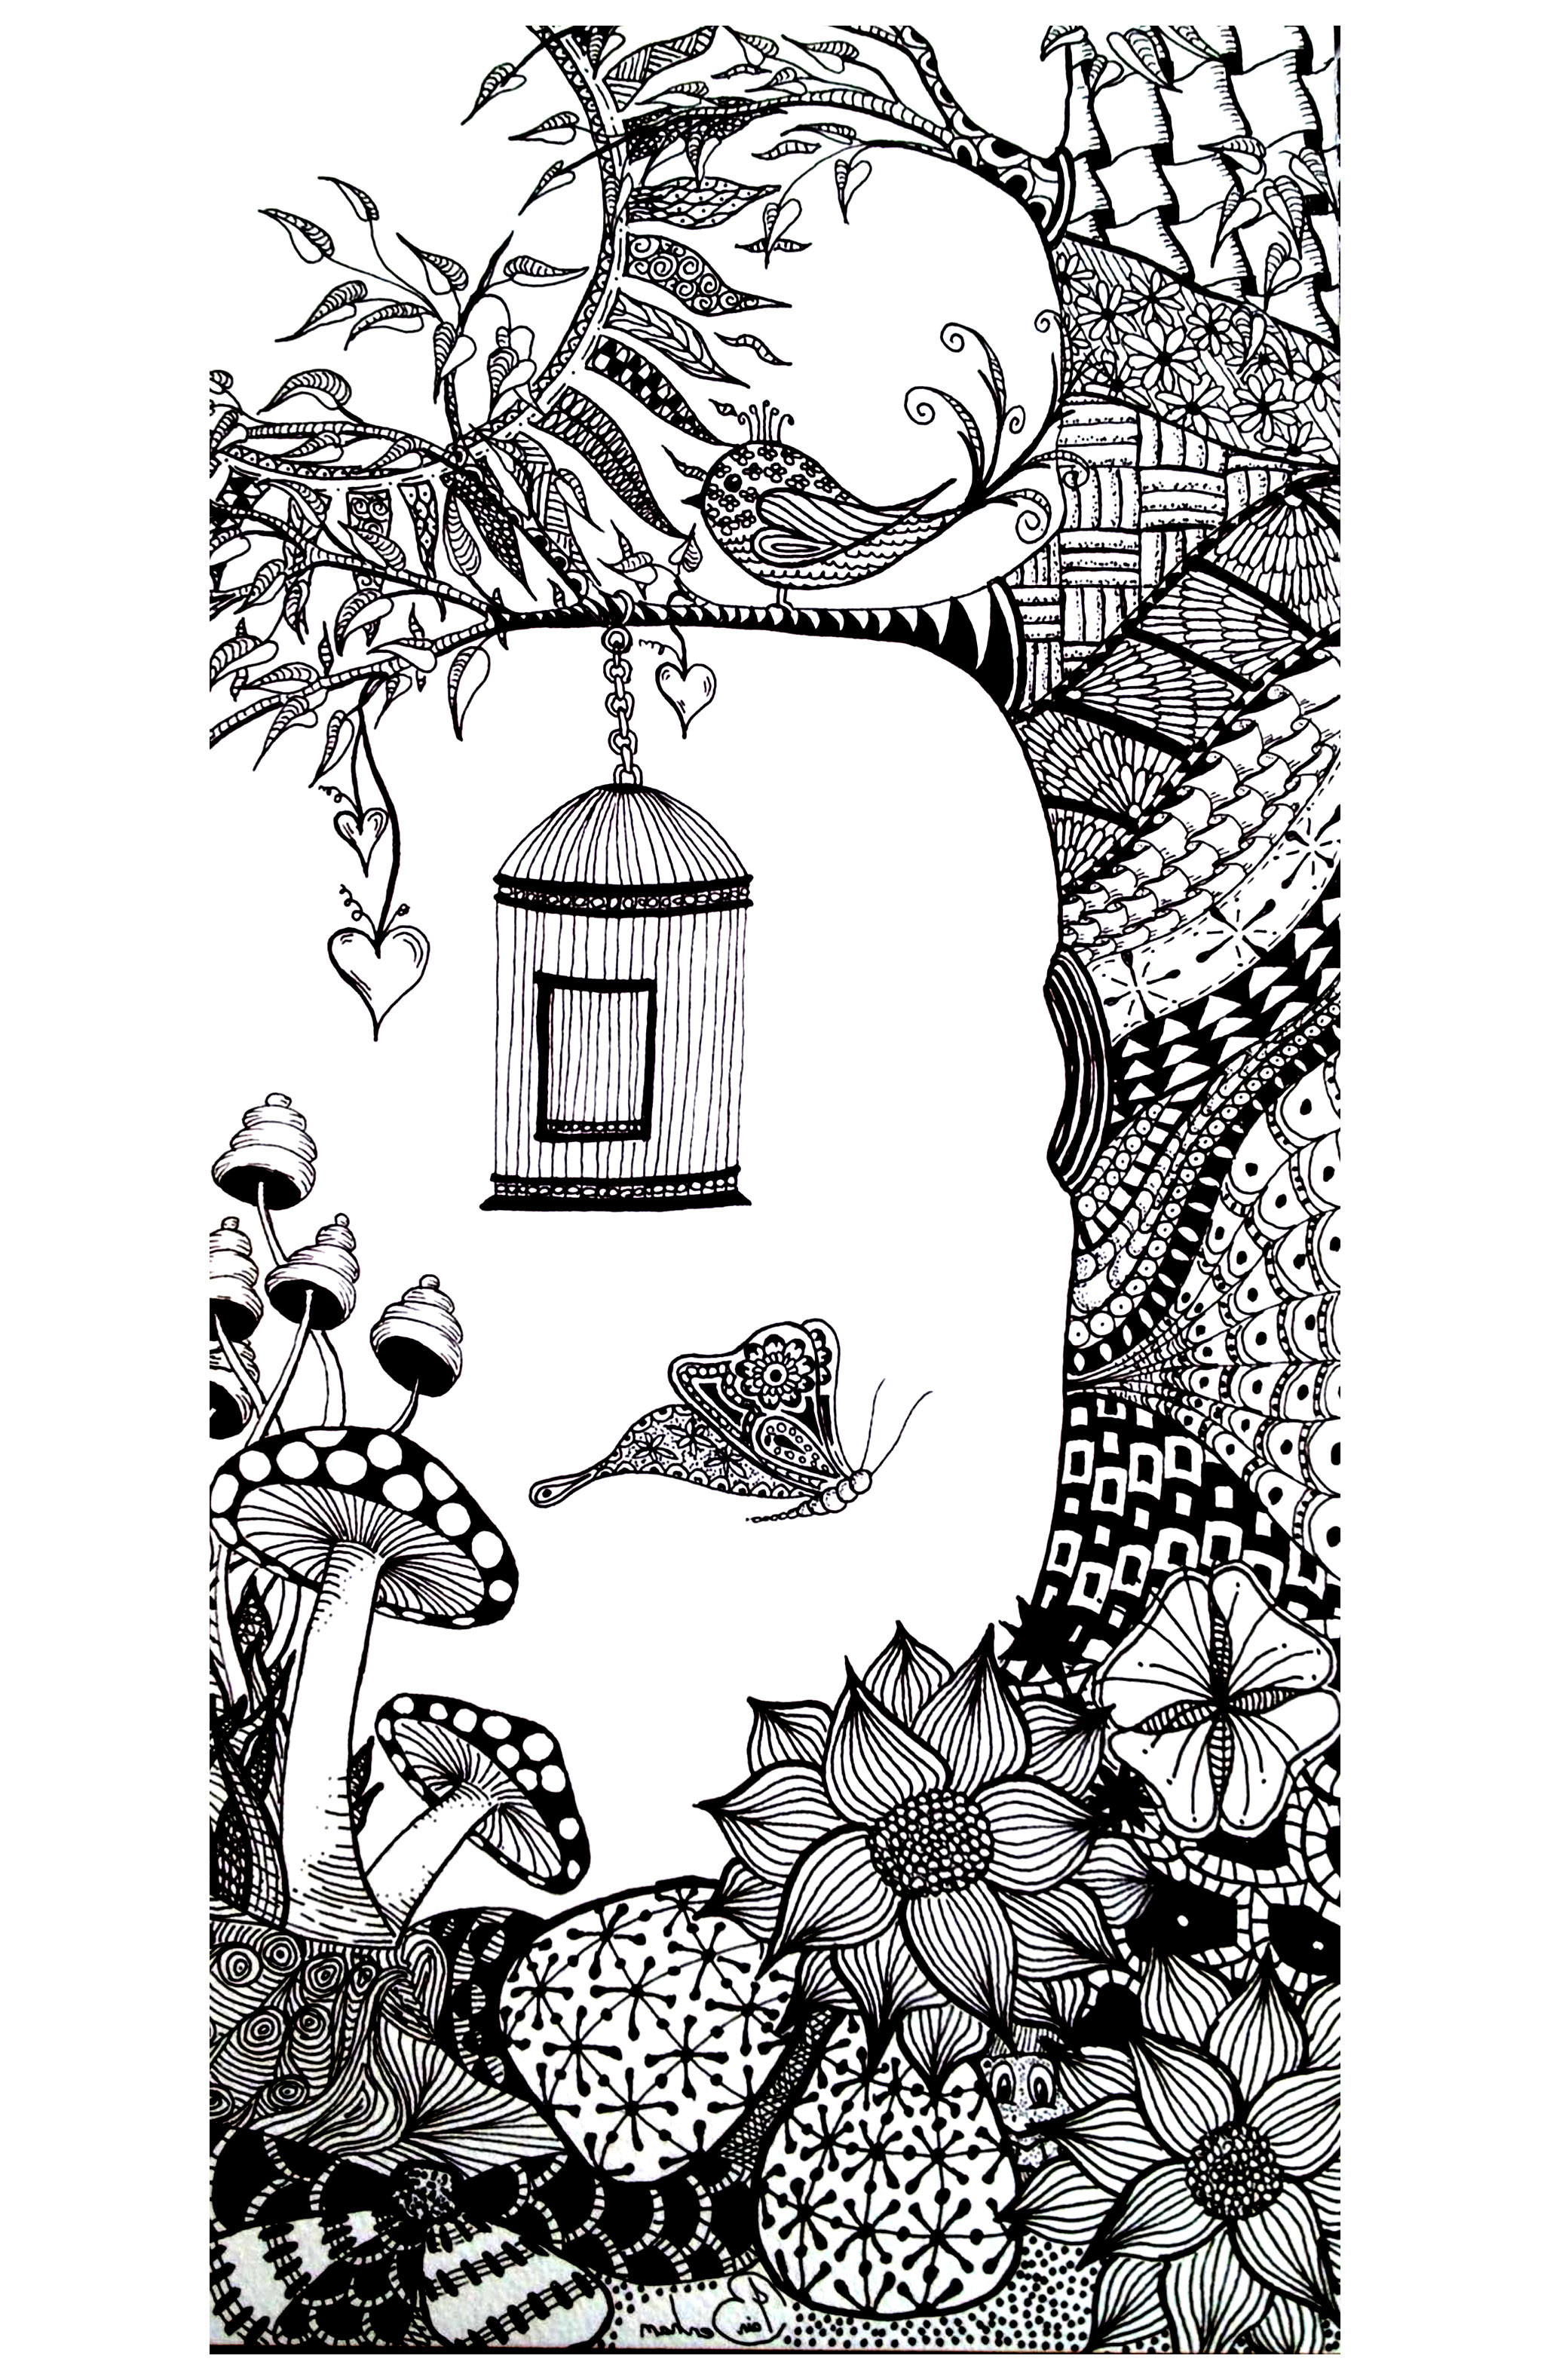 Coloring Page With A Butterfly And Bird In Wonderful Environment